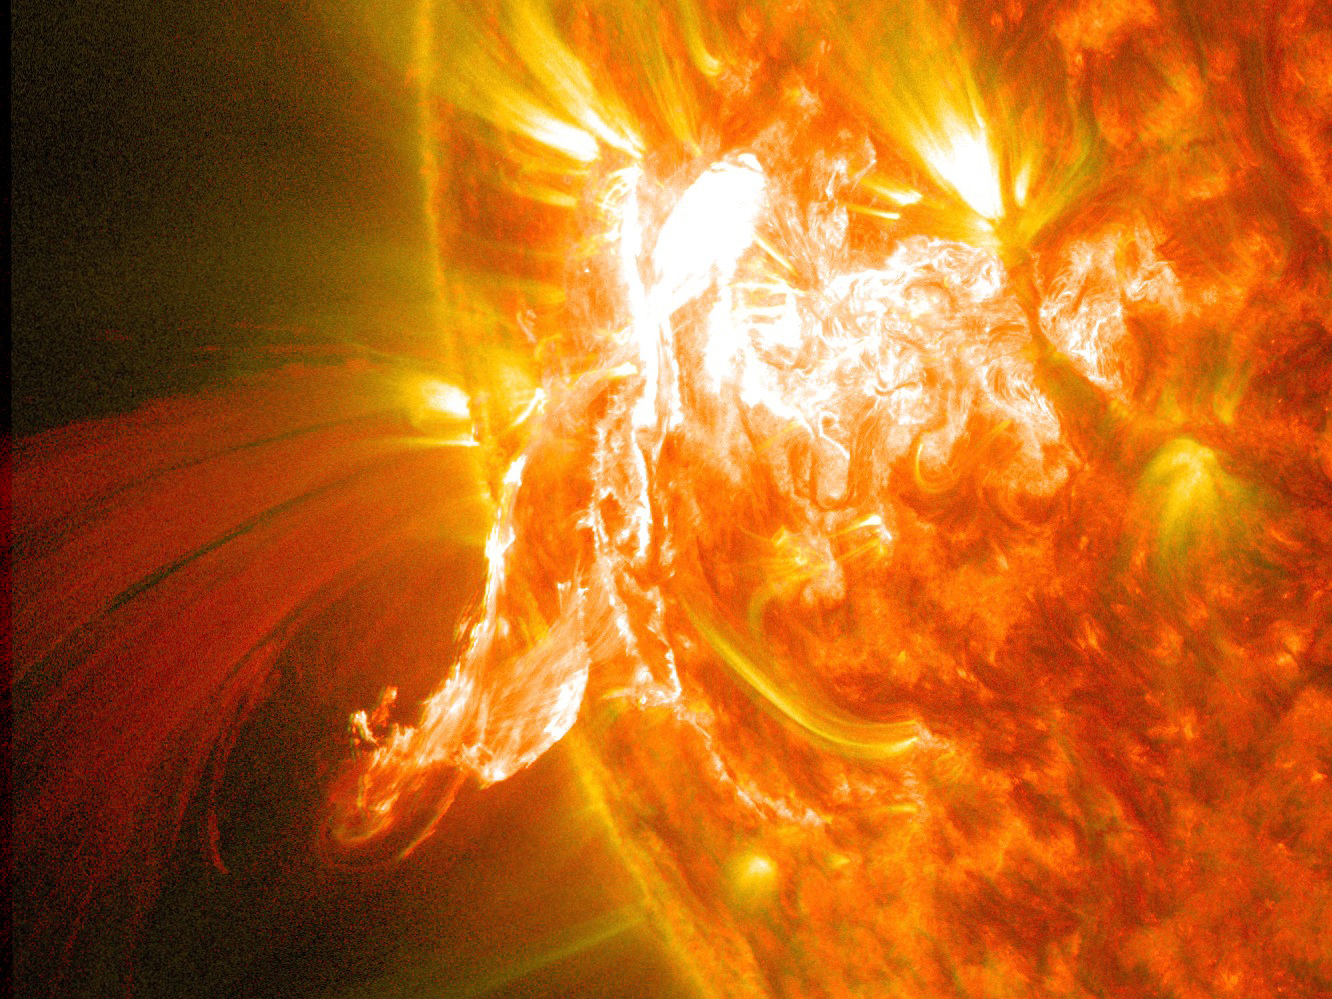 Close-Up of Solar Flare Seen by Solar Dynamics Observatory on Jan. 30, 2014